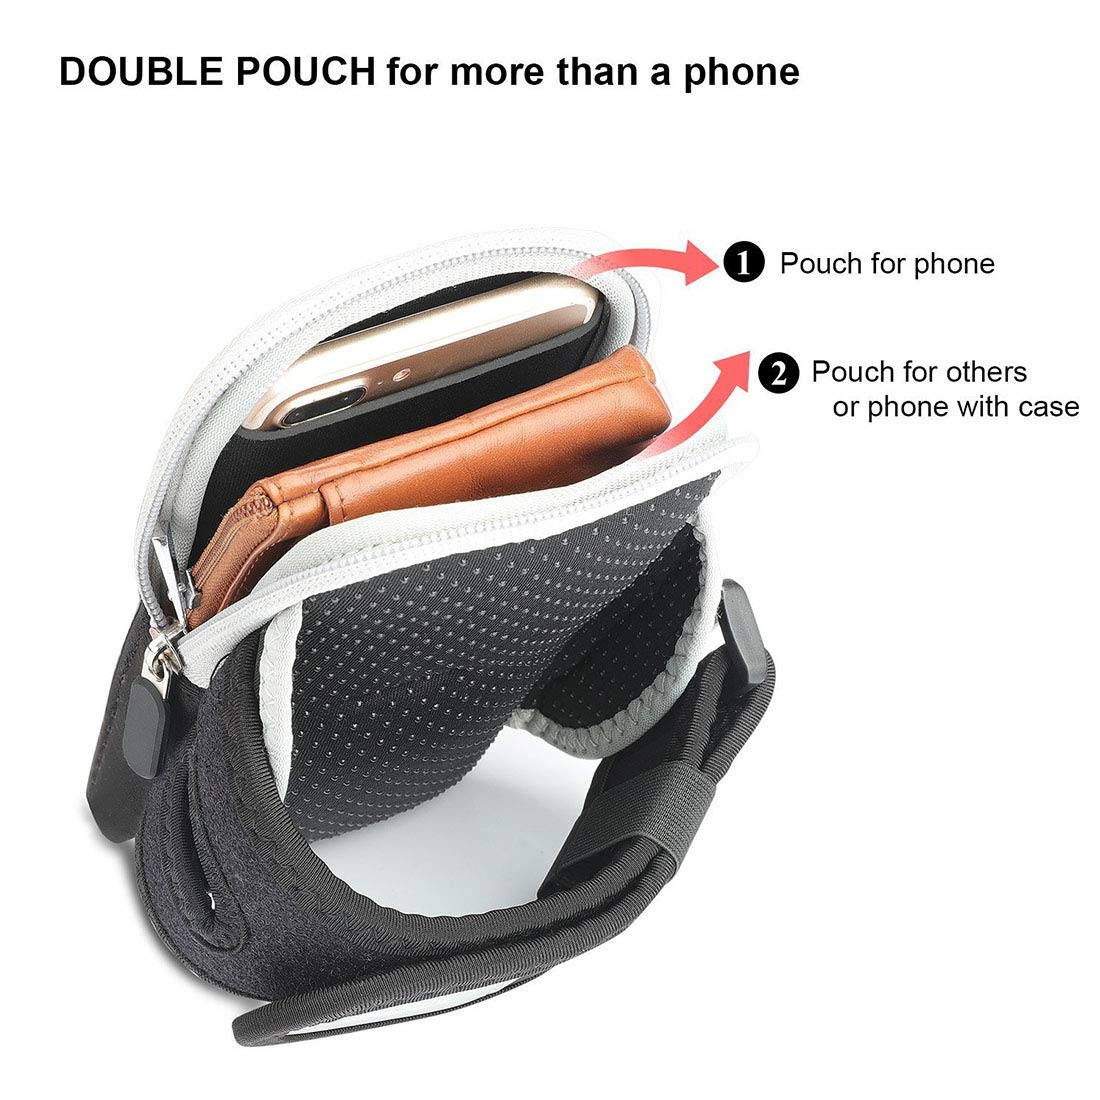 Hemengjuan Outdoor Cycling, Running, Fitness, Arm Pack, Running and Running are Suitable for Iphone6/7/8 Mobile, Phone Arm Band (Color : Gray) by Hemengjuan